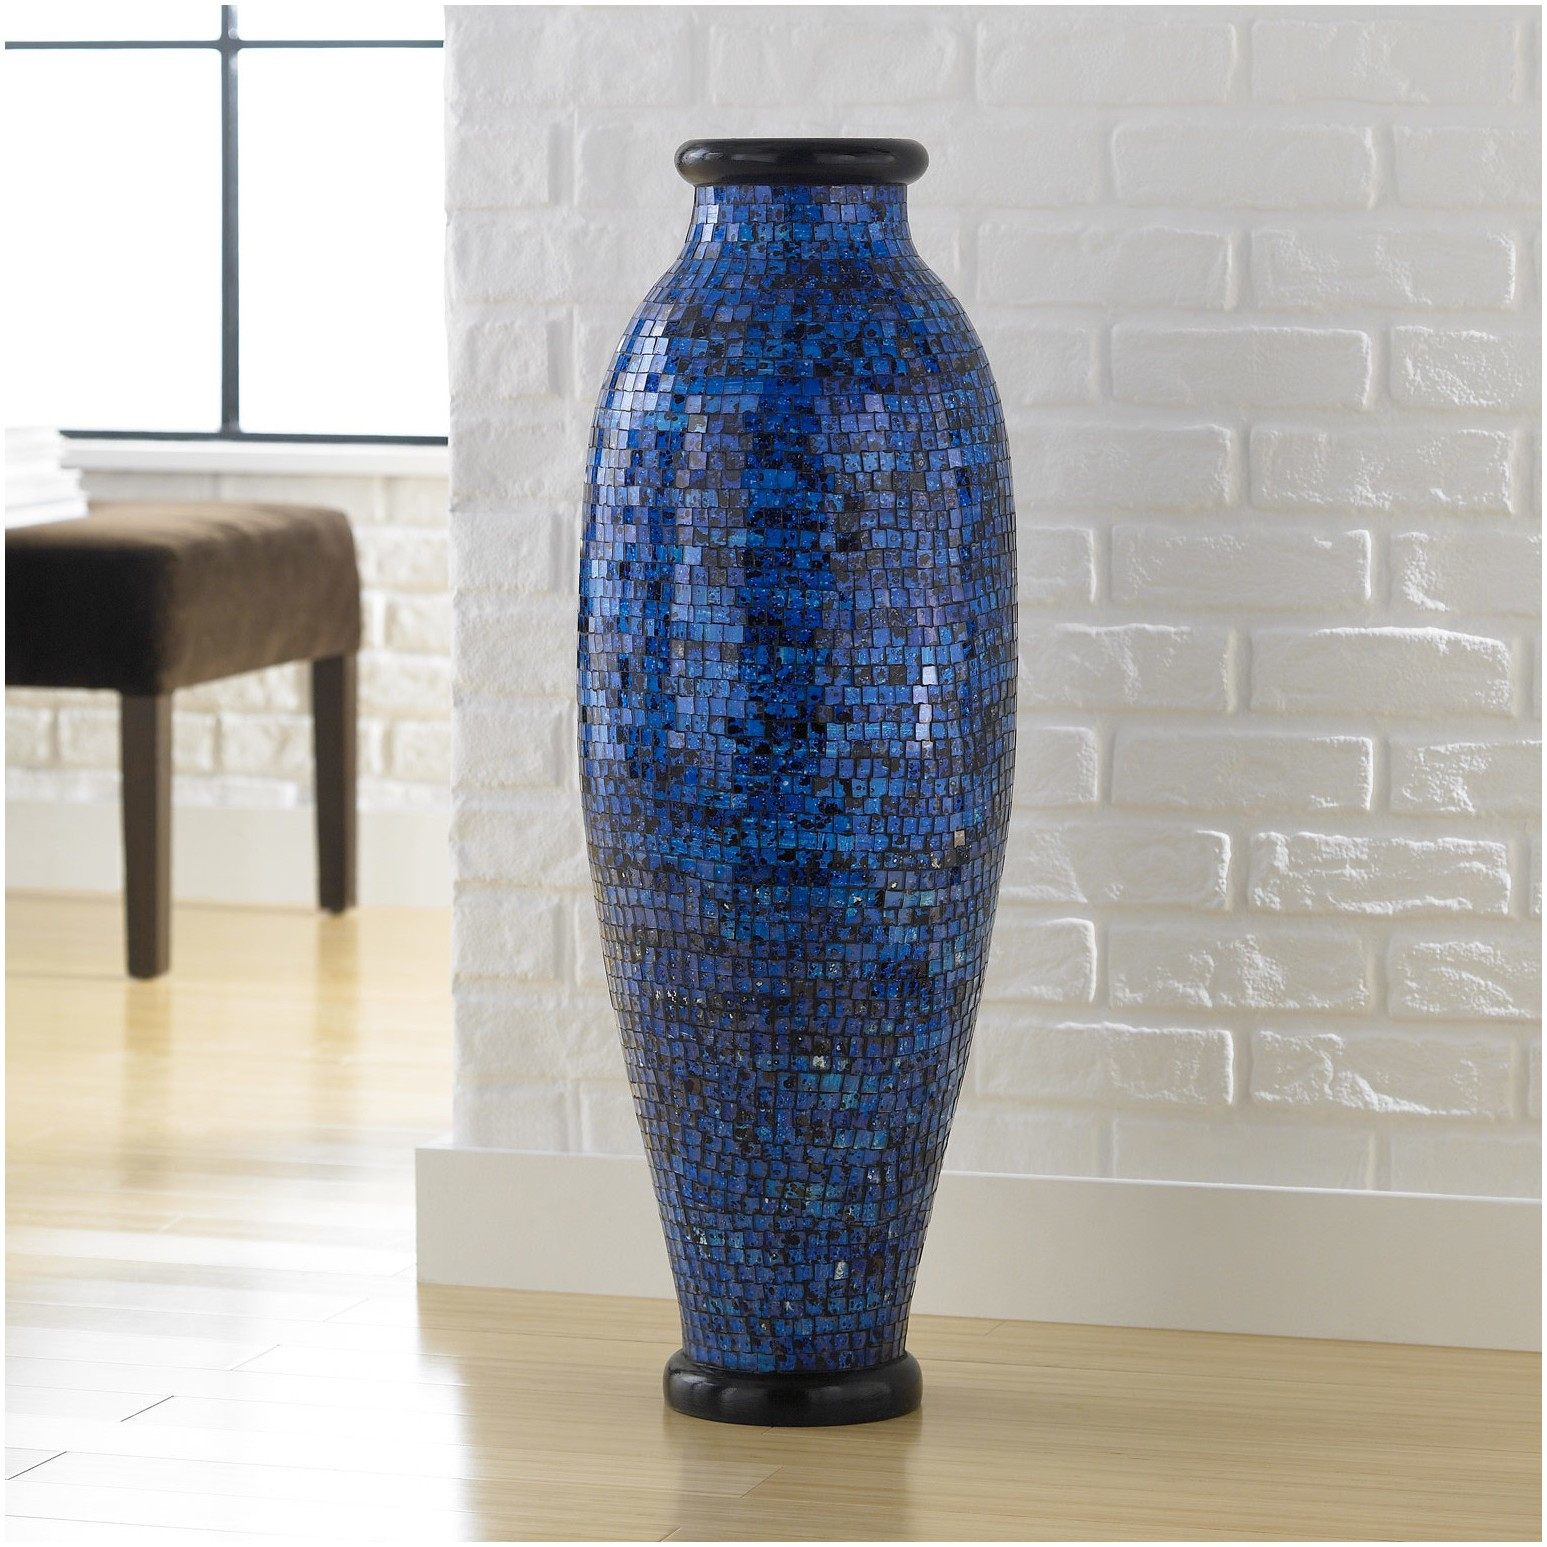 28 Best Very Large Ceramic Vases 2021 free download very large ceramic vases of 21 beau decorative vases anciendemutu org throughout ideas decorative vases about karman floor vase vasesh xyberworks floori 0d vases floor decorative vases